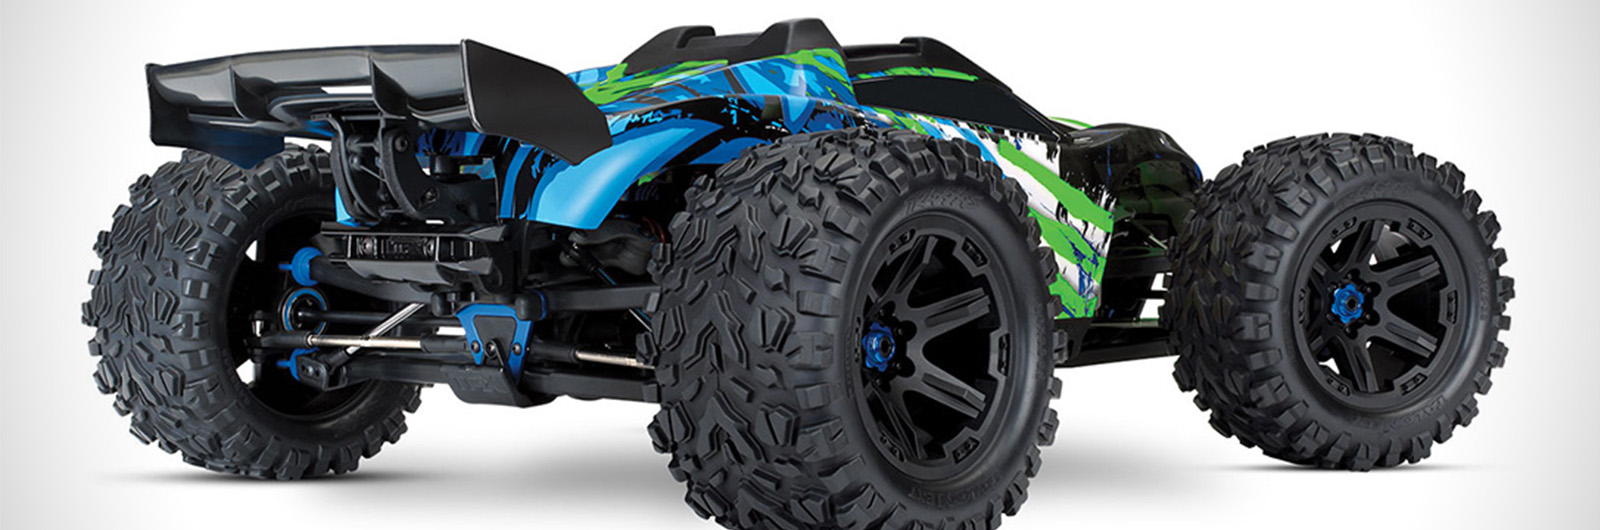 This Remote-Controlled Monster Truck Goes 70 MPH